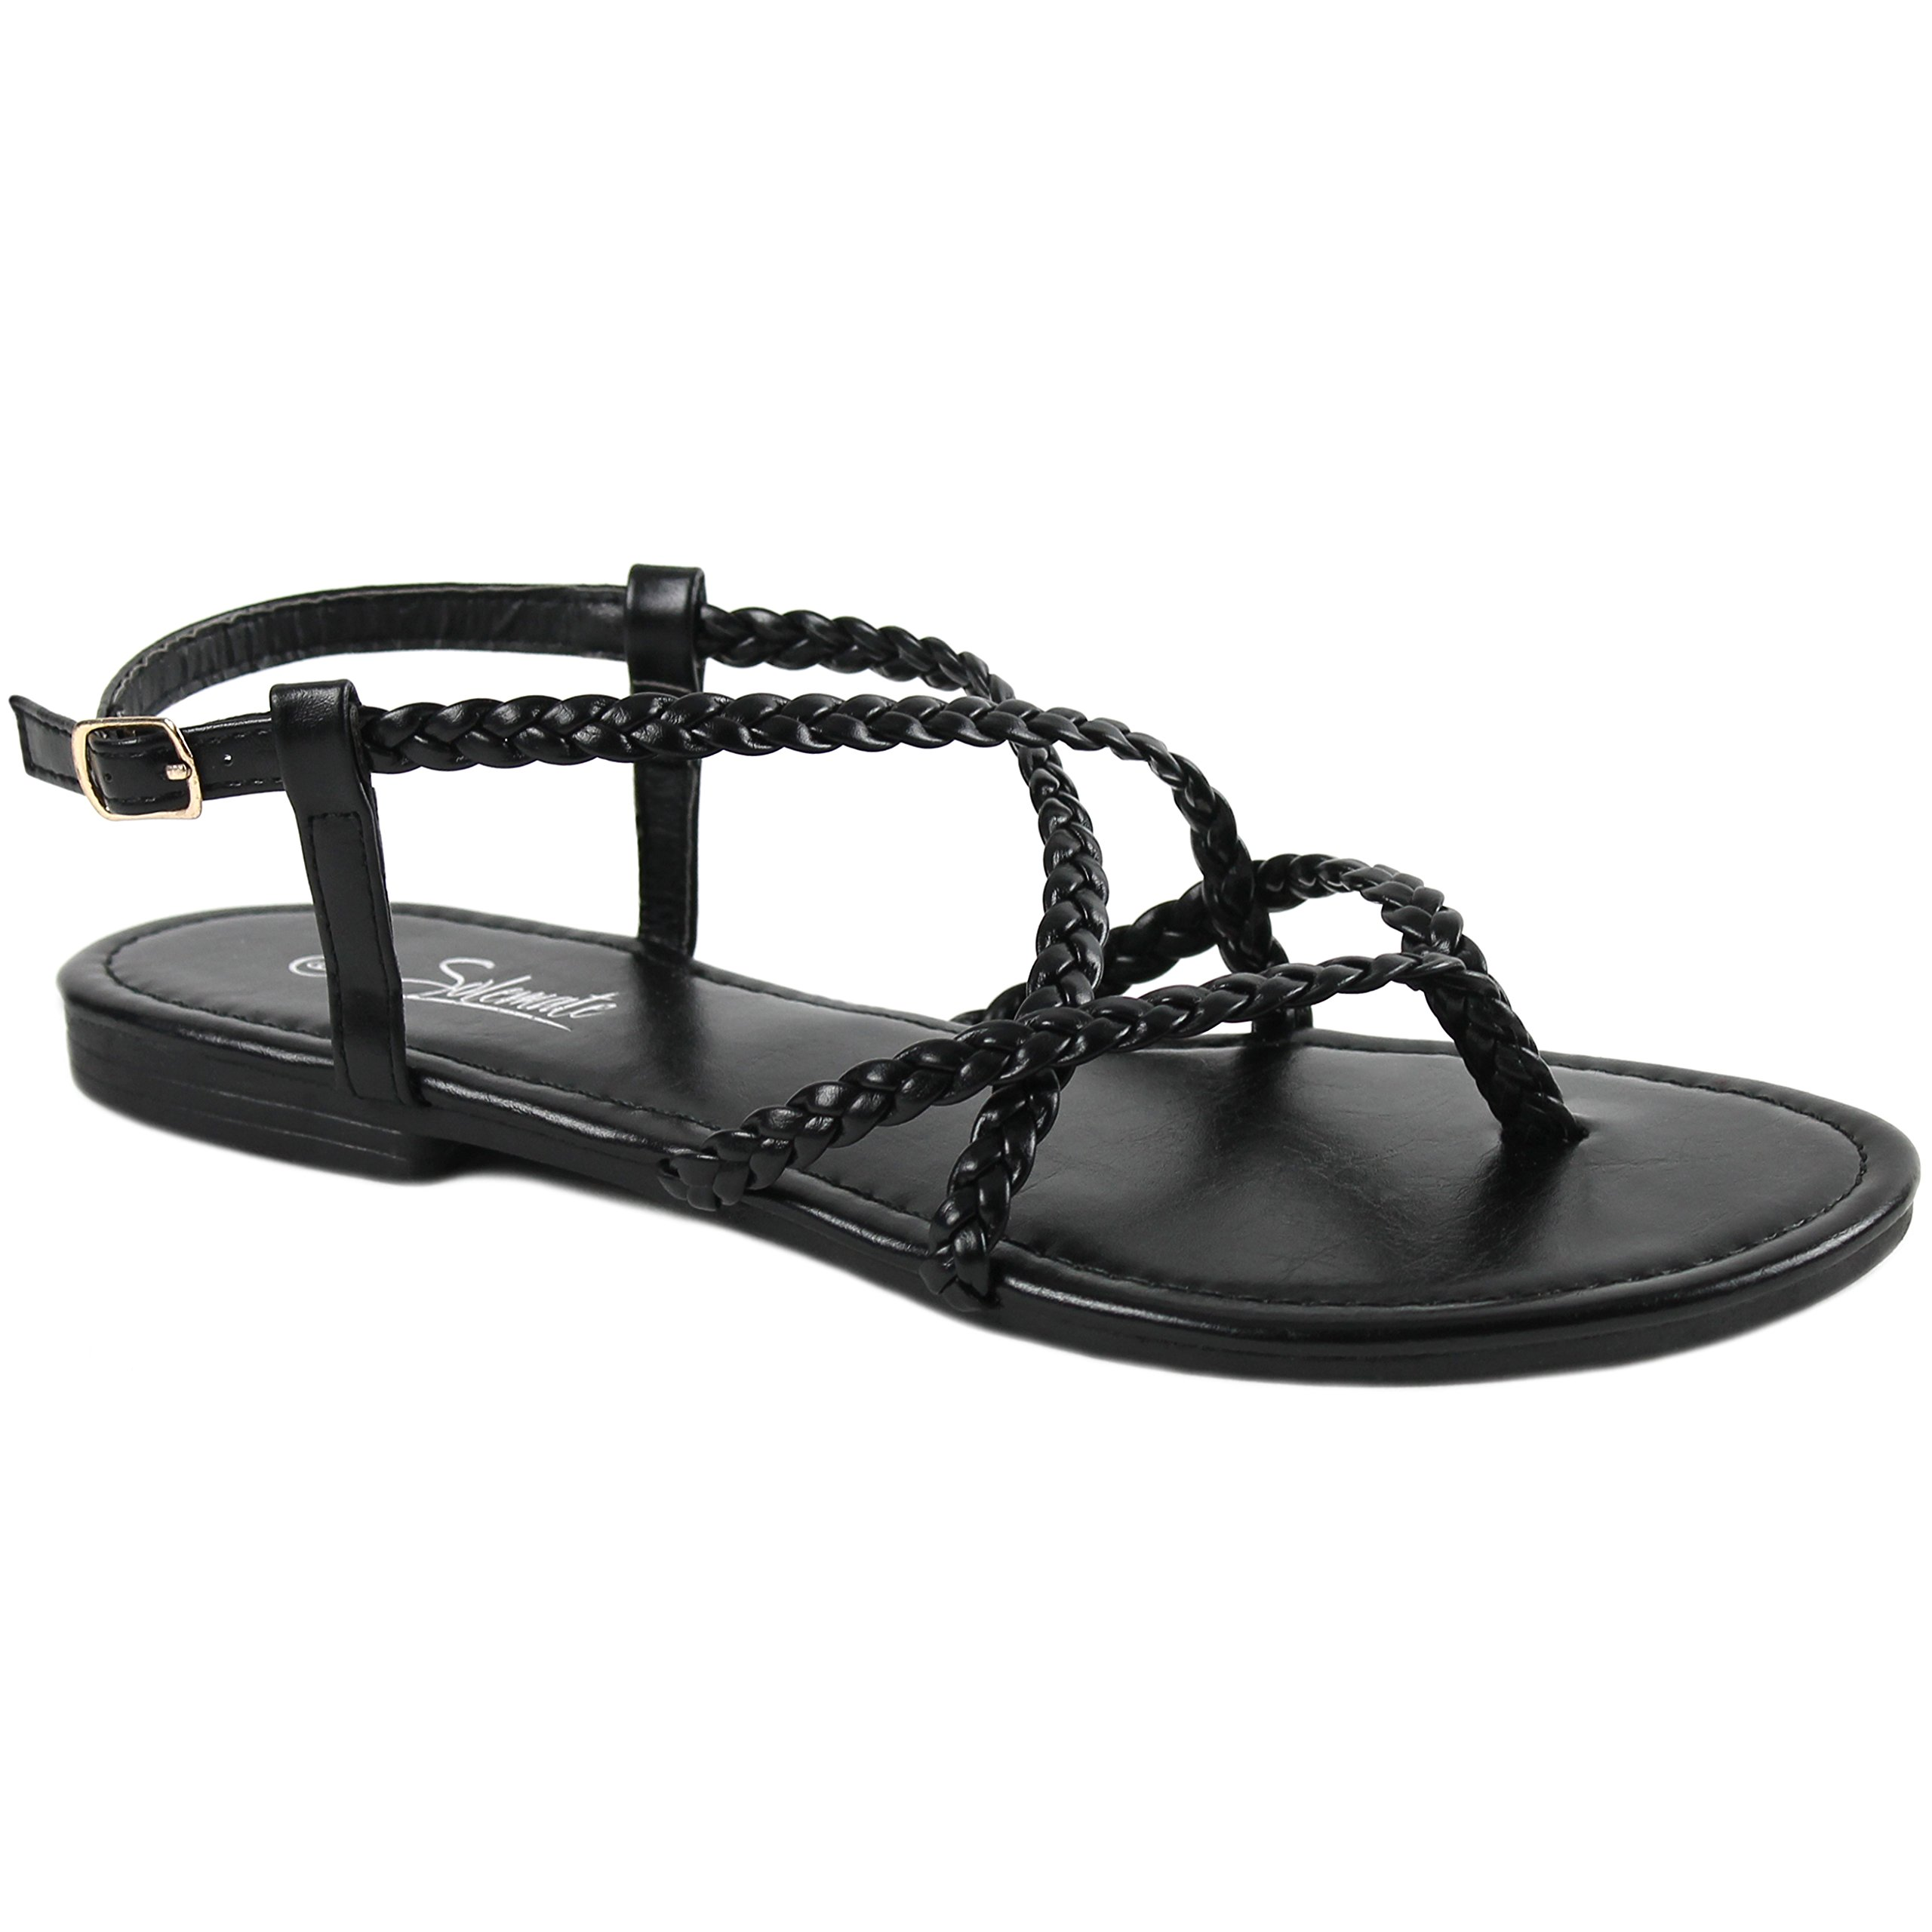 Solemate Women's Braided Strappy Gladiator Thong T Strap Flat Sandals (8 B(M) US, Black)